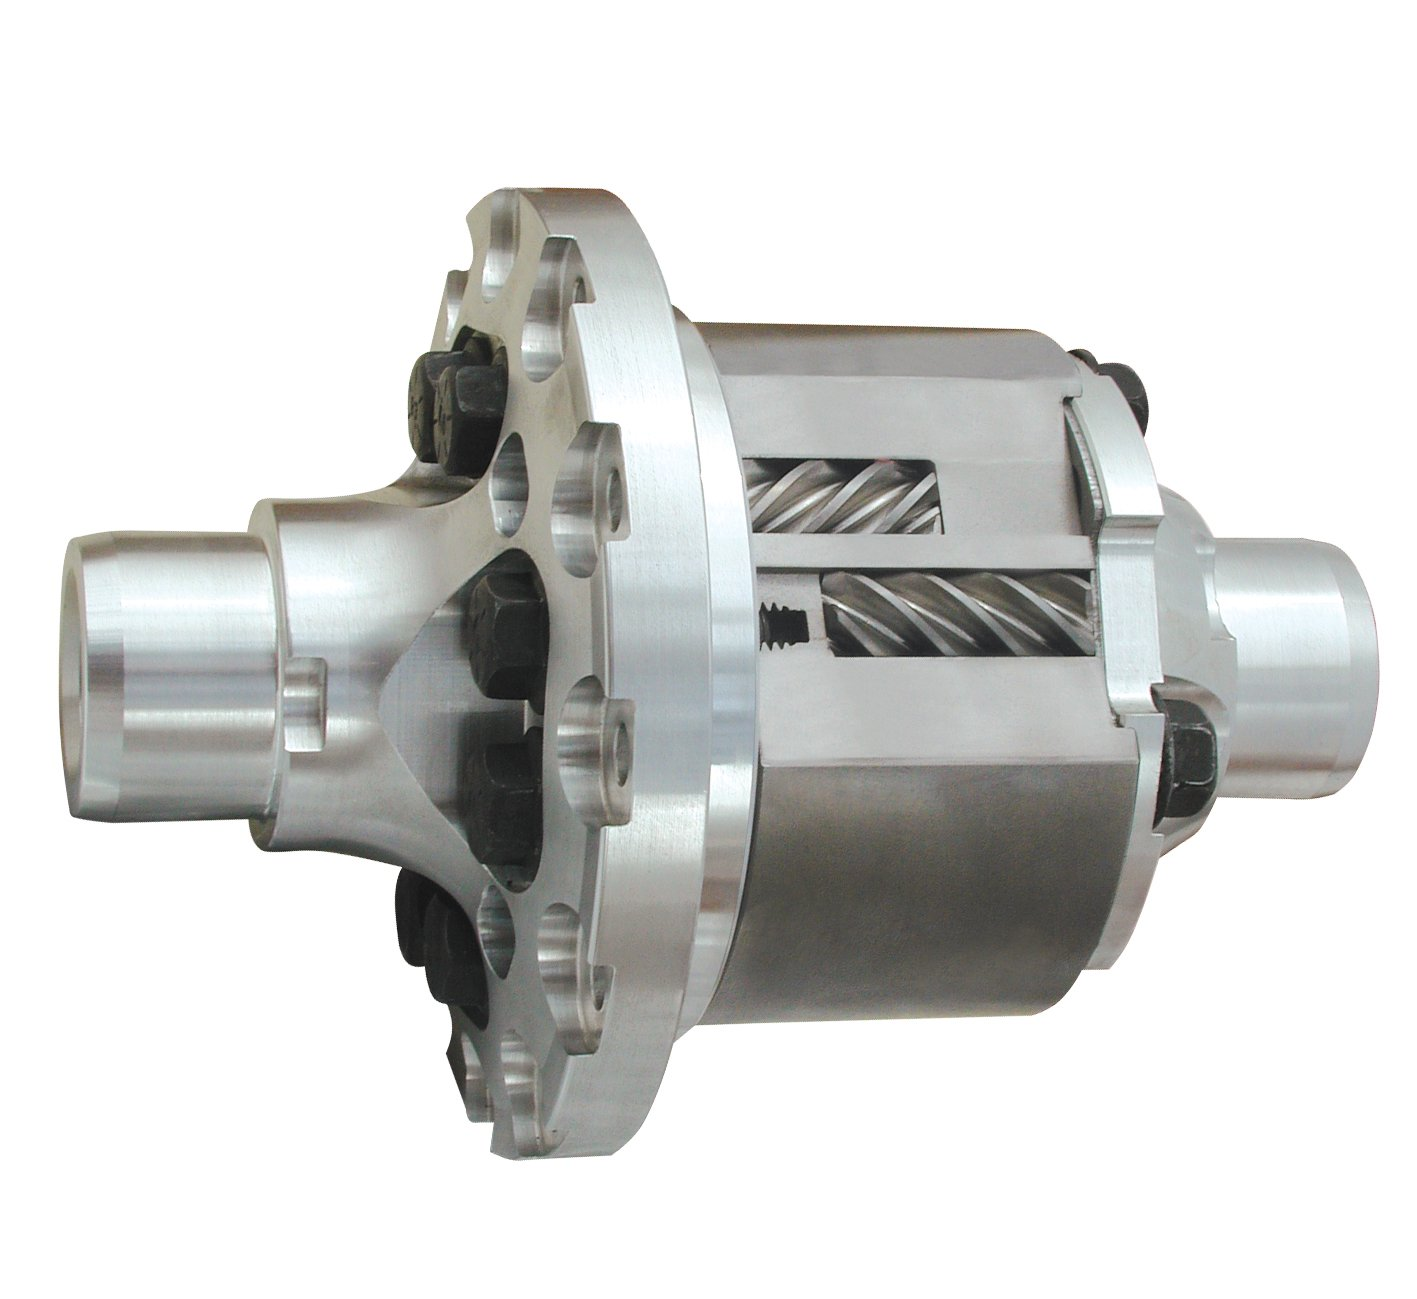 Detroit Locker 912A556 Trutrac Differential with 28 Spline for GM 8.5'', 10 Bolt Rear End by Detroit Locker